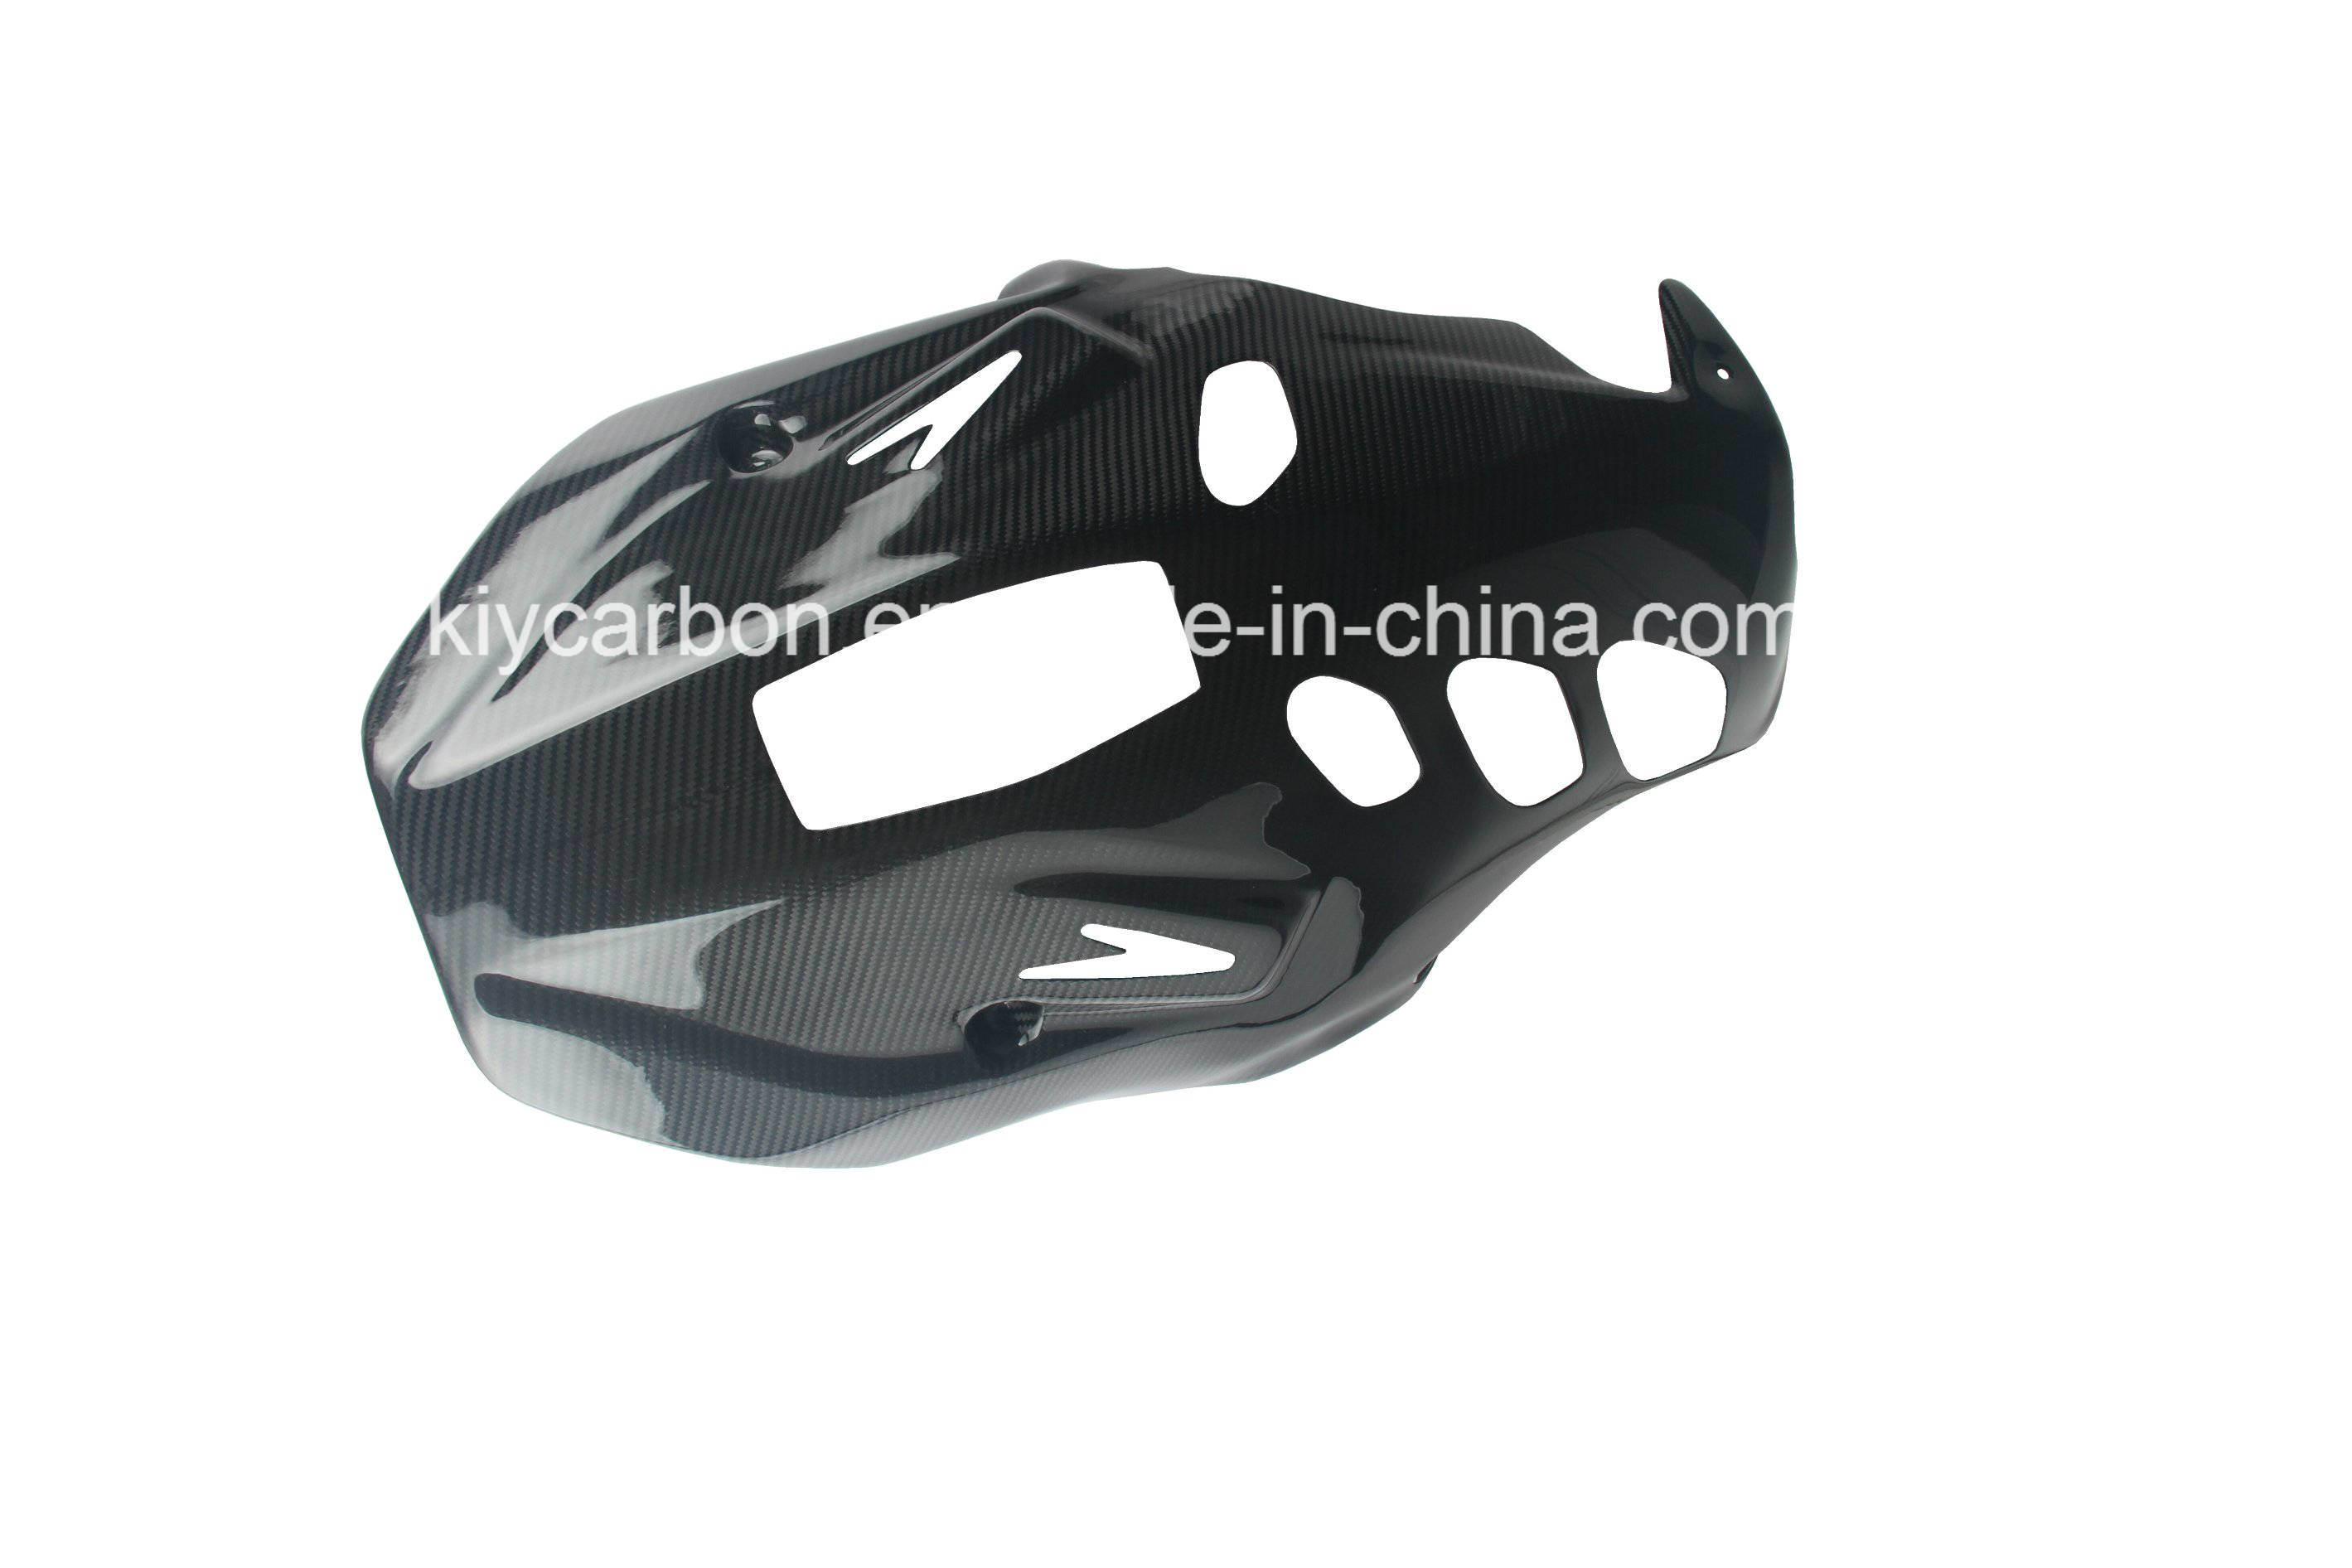 Twill Carbon Fiber Belly Pan Tuning for Suzuki B-King 07-11